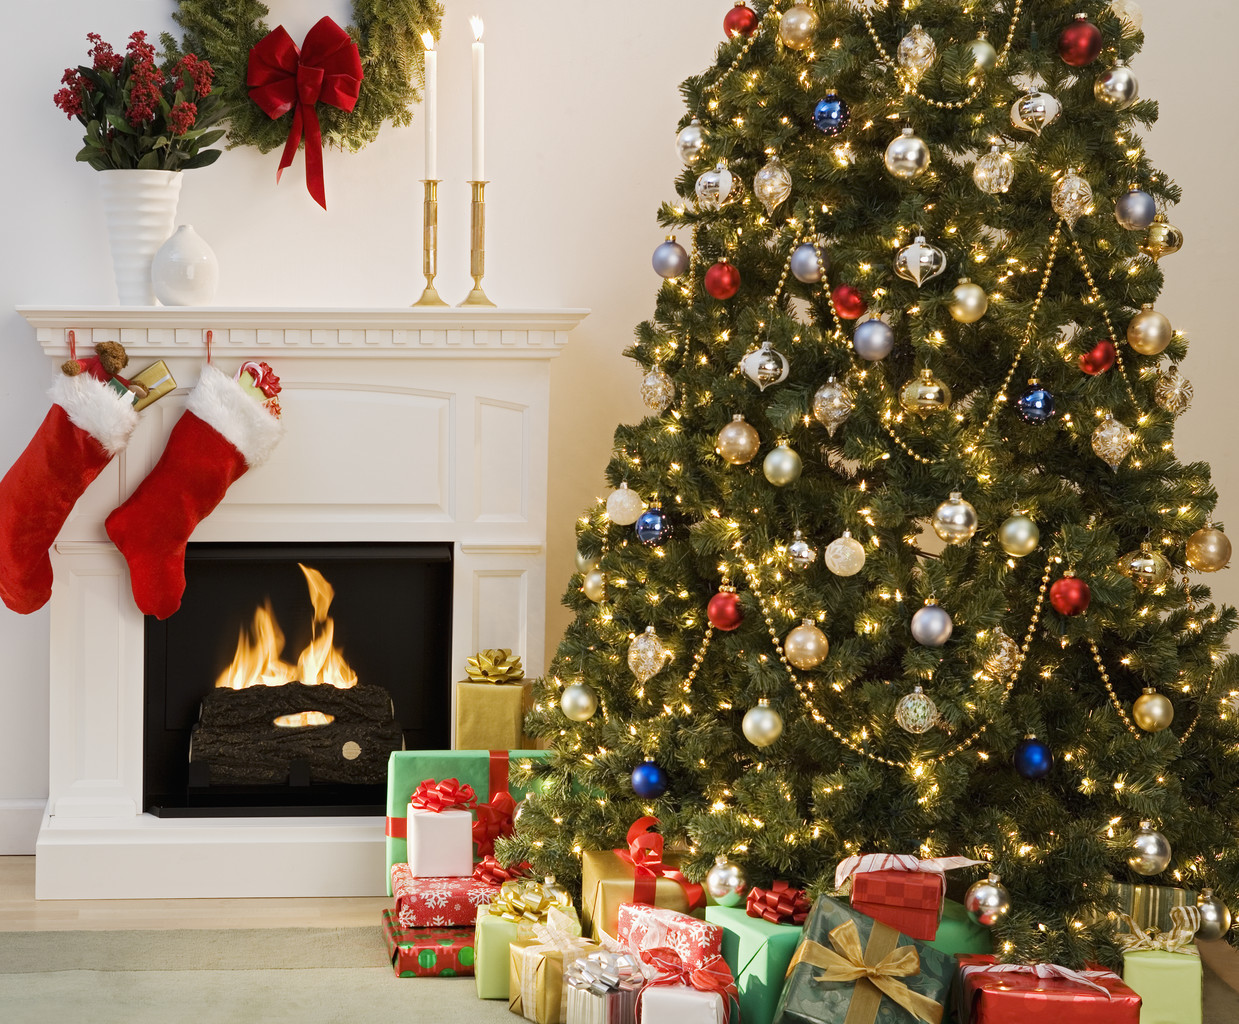 Christmas Tree With Presents And Fireplace With Stockings The